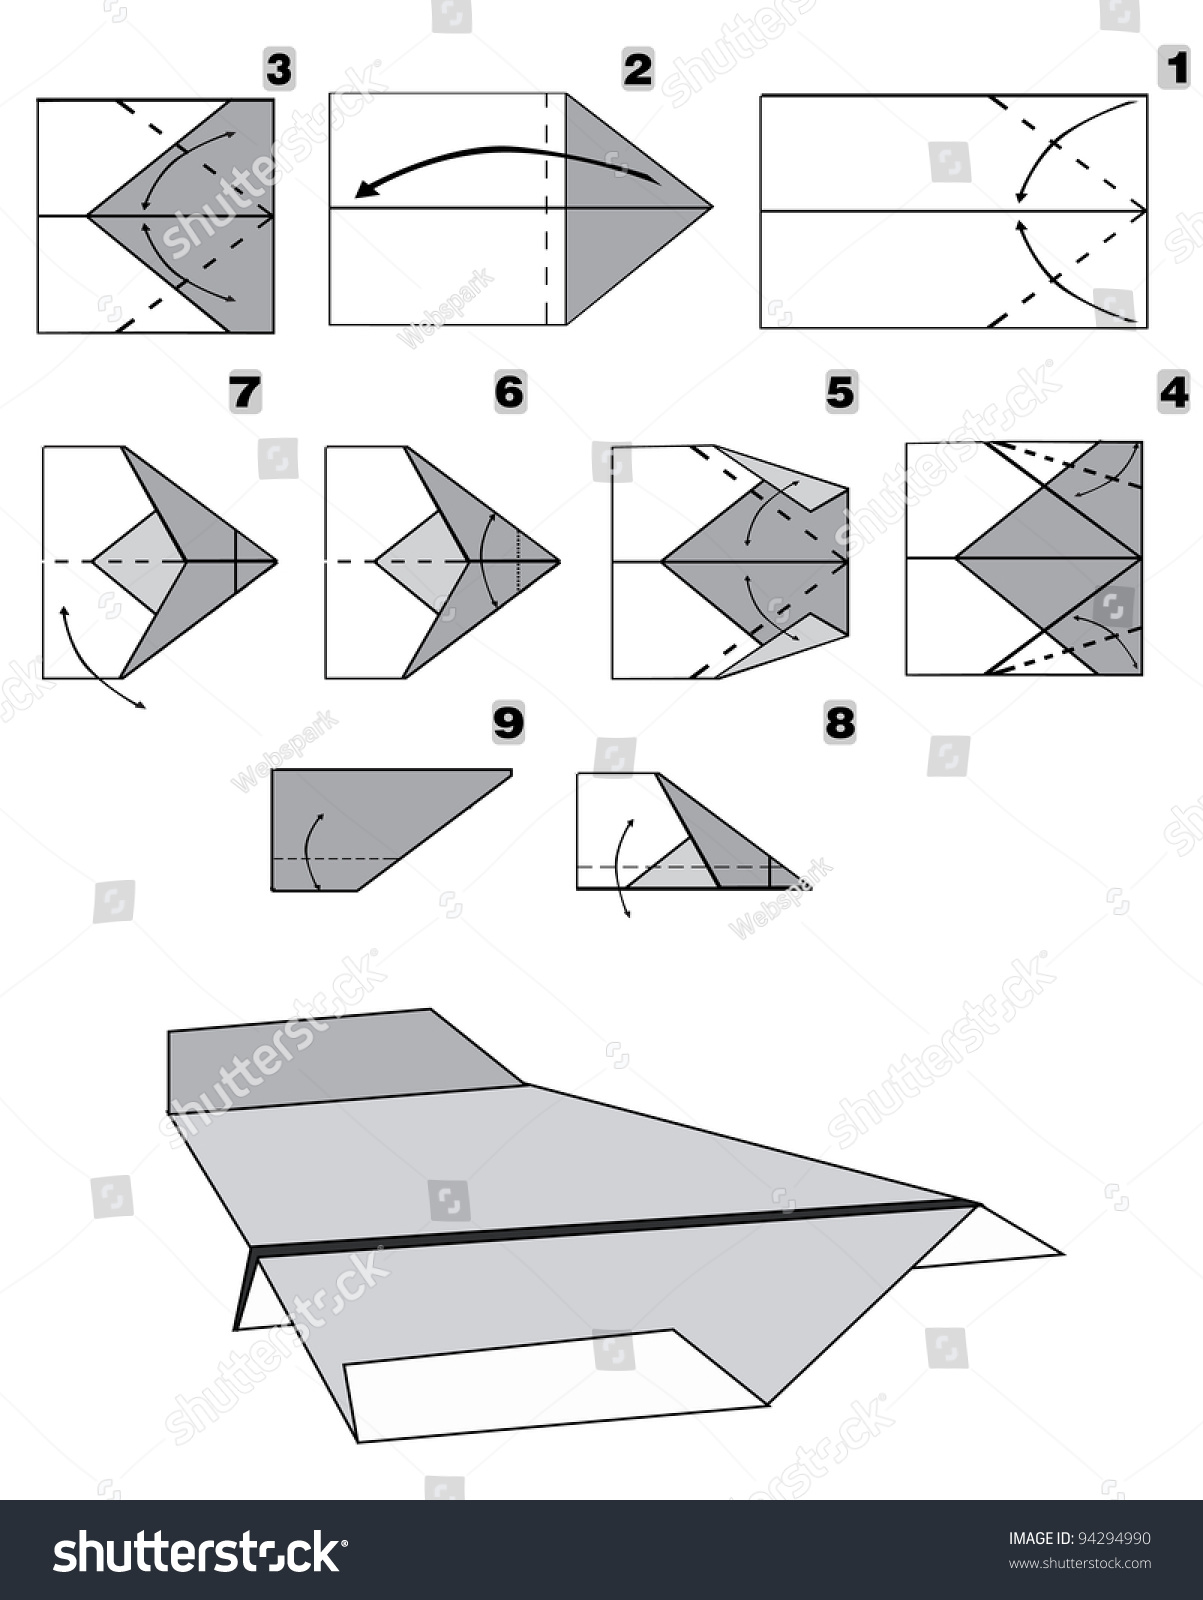 Best writing paper airplane design step by step